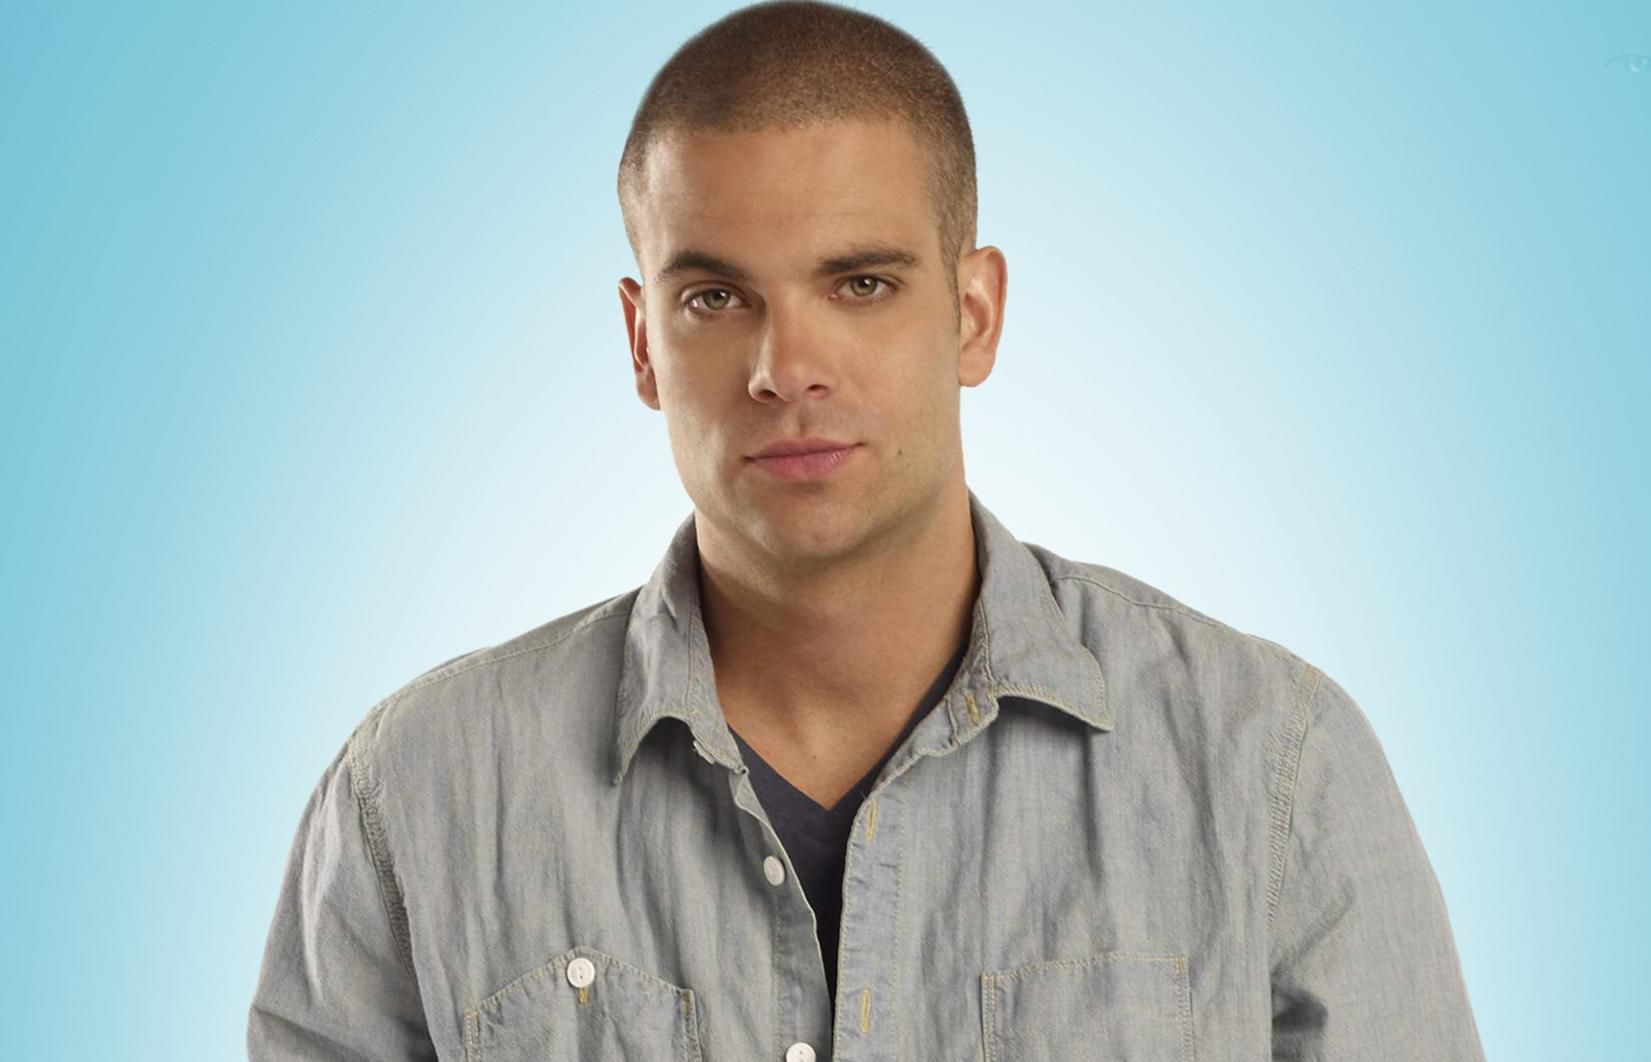 TEEN CHOICE 2010: Mark Salling (GLEE) will co-host TEEN CHOICE 2010 alongside pop sensantion Katy Perry on Monday, Aug. 9 (8:00-10:00 PM ET/PT) on FOX. ©2010 Fox Broadcasting Co. Cr: Miranda Penn Turin/FOX